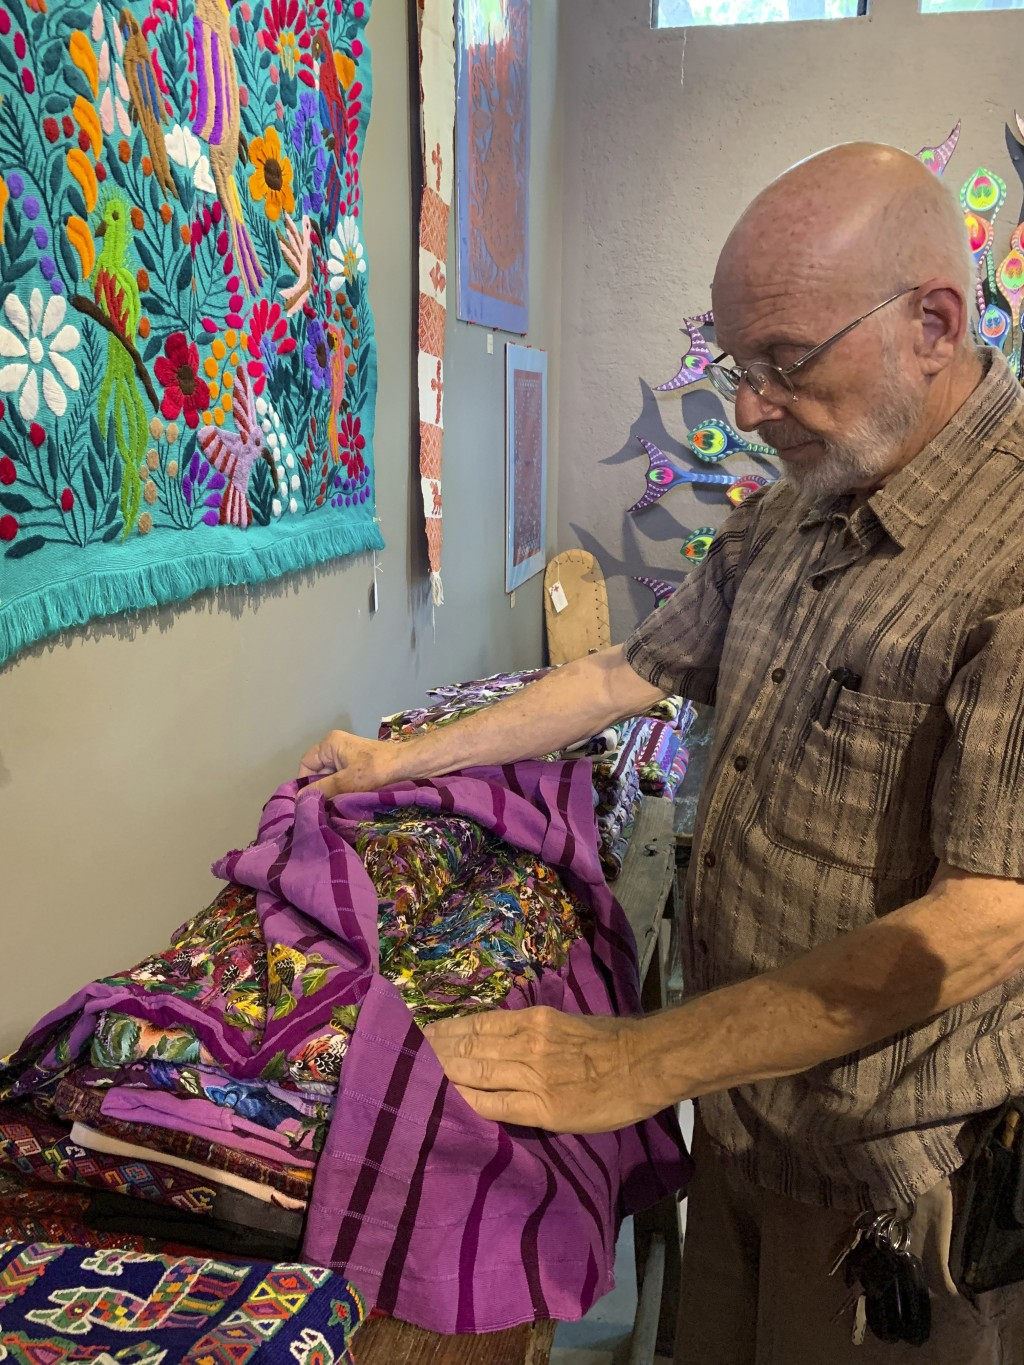 This June 17, 2019 photo shows gallery owner Mayer Shacter holding a hand-embroidered Guatemalan garment, at Galeria Atotonilco near San Miguel de All